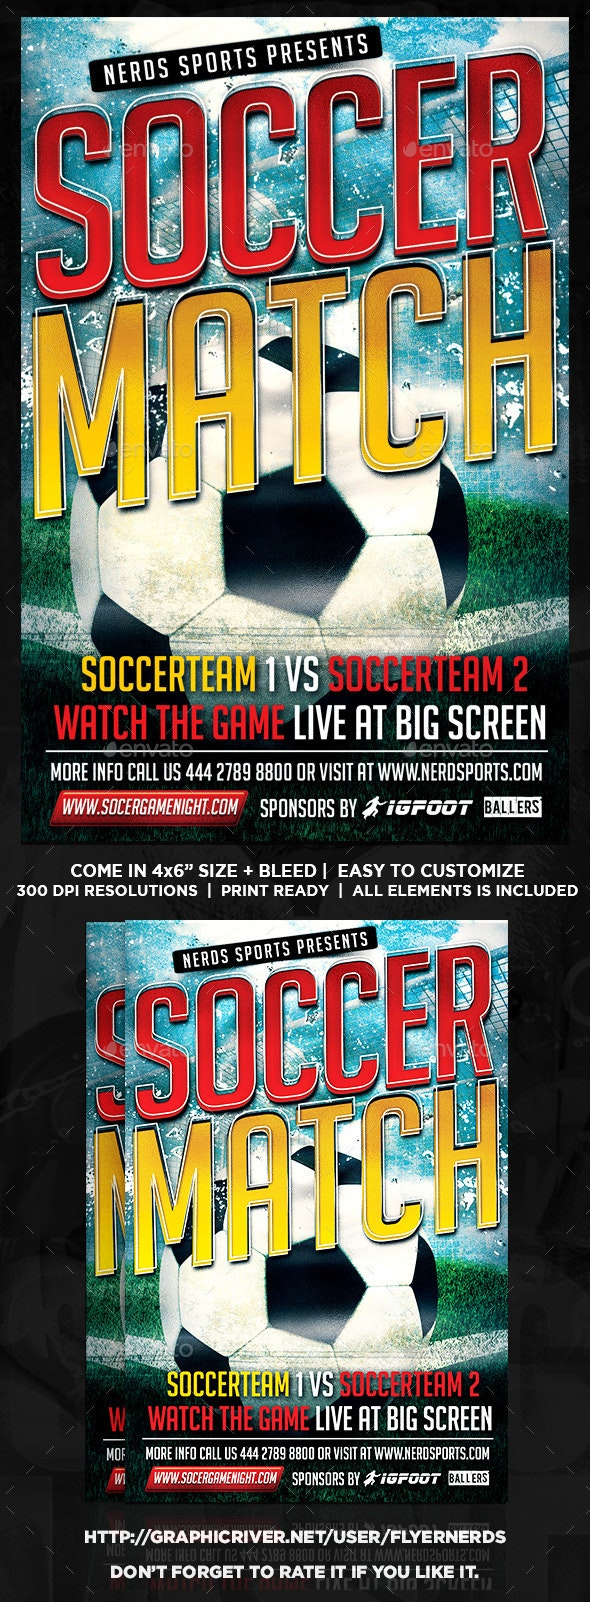 Kick Off Soccer Flyer - Sports Events